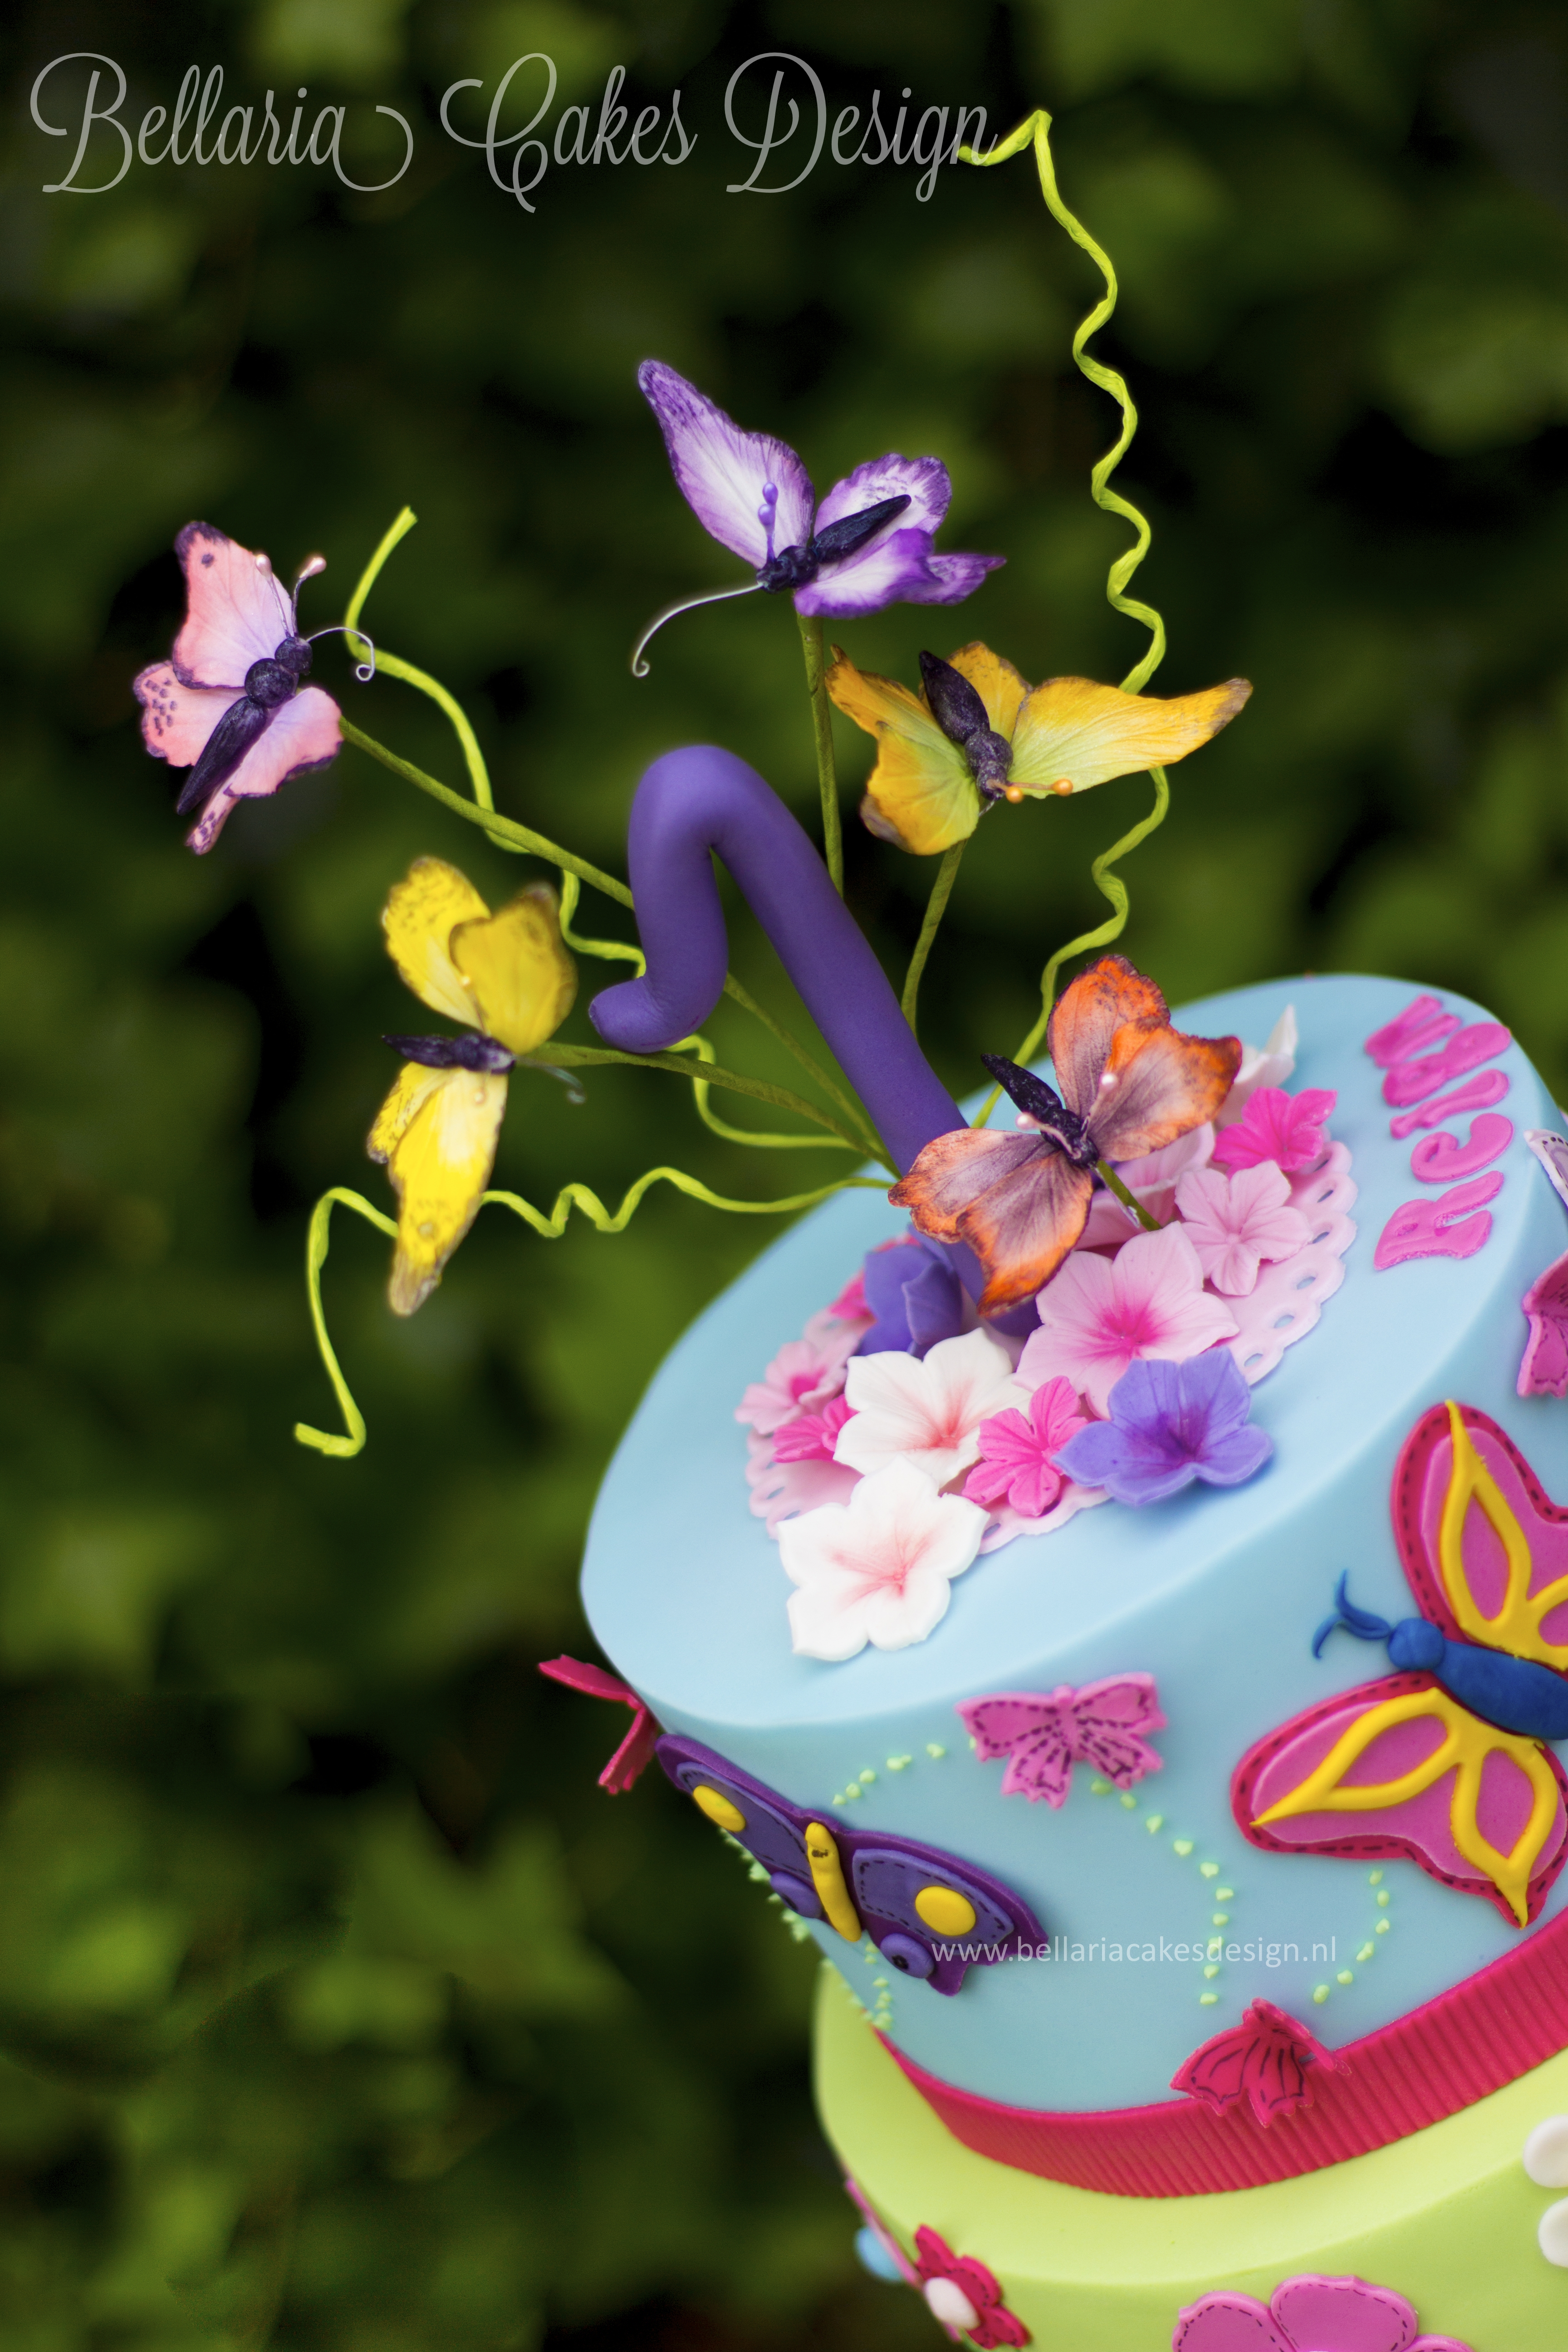 butterflies garden themed cake for the very first birthday of a little girl ive used bright colors and decorated the top tier with butterflies